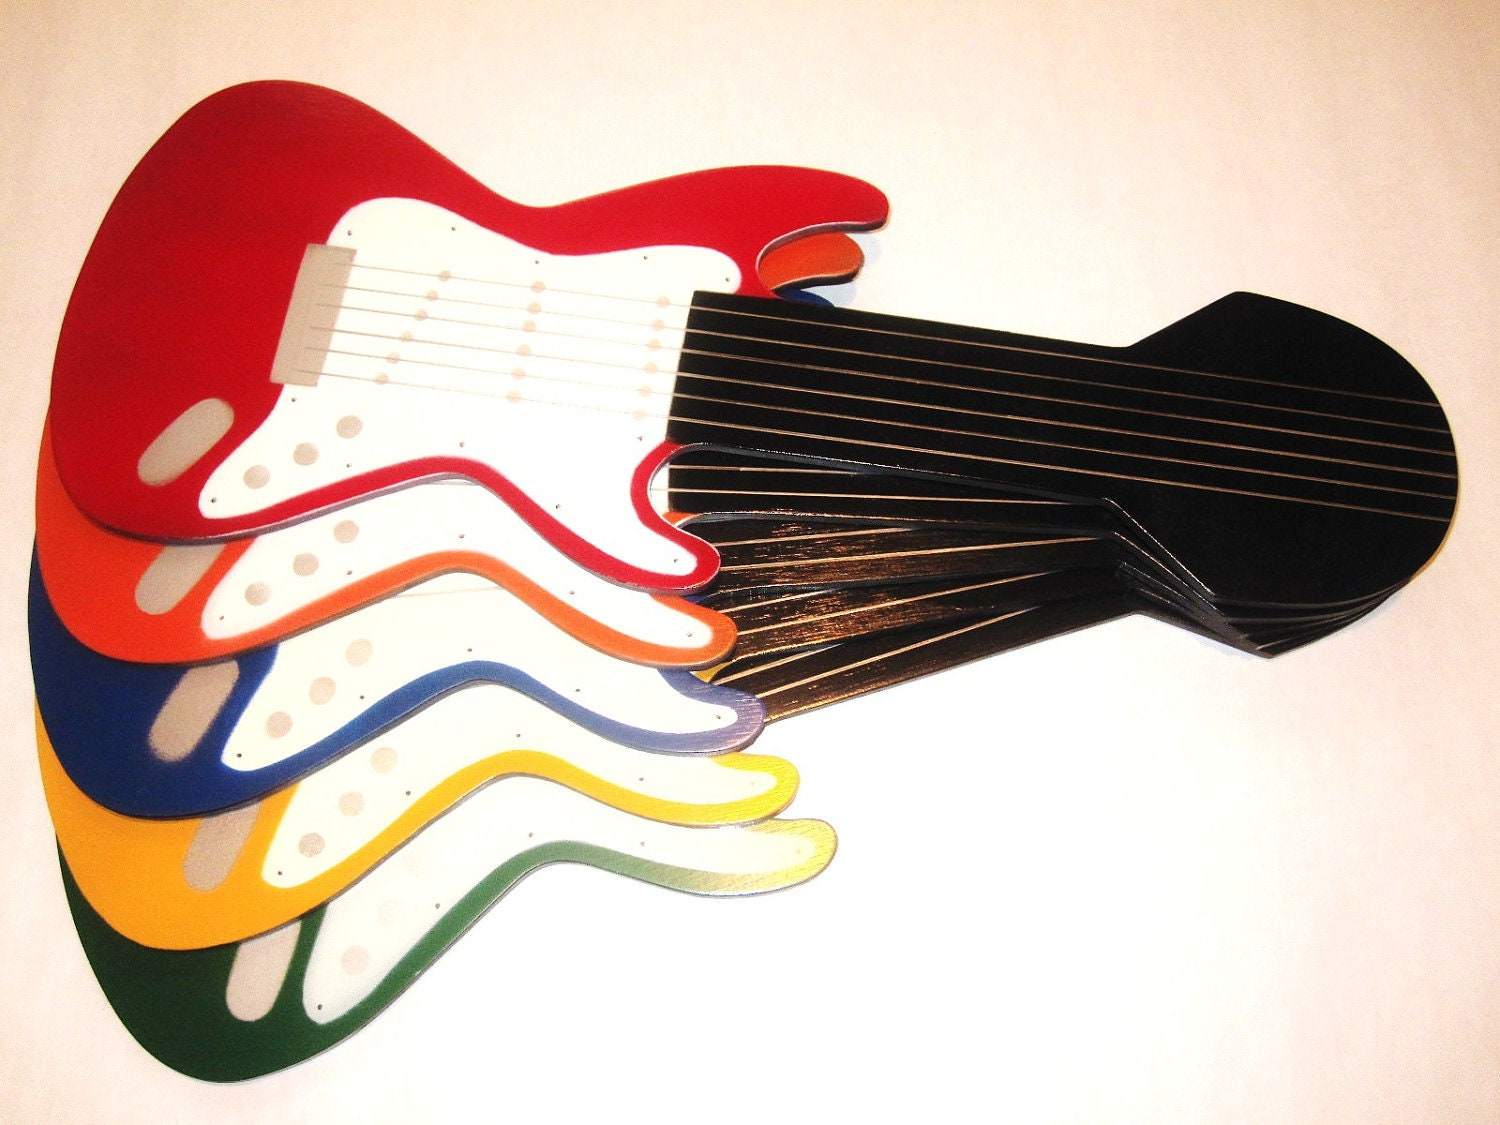 Multi-colored electric guitar shaped ceiling fan blades